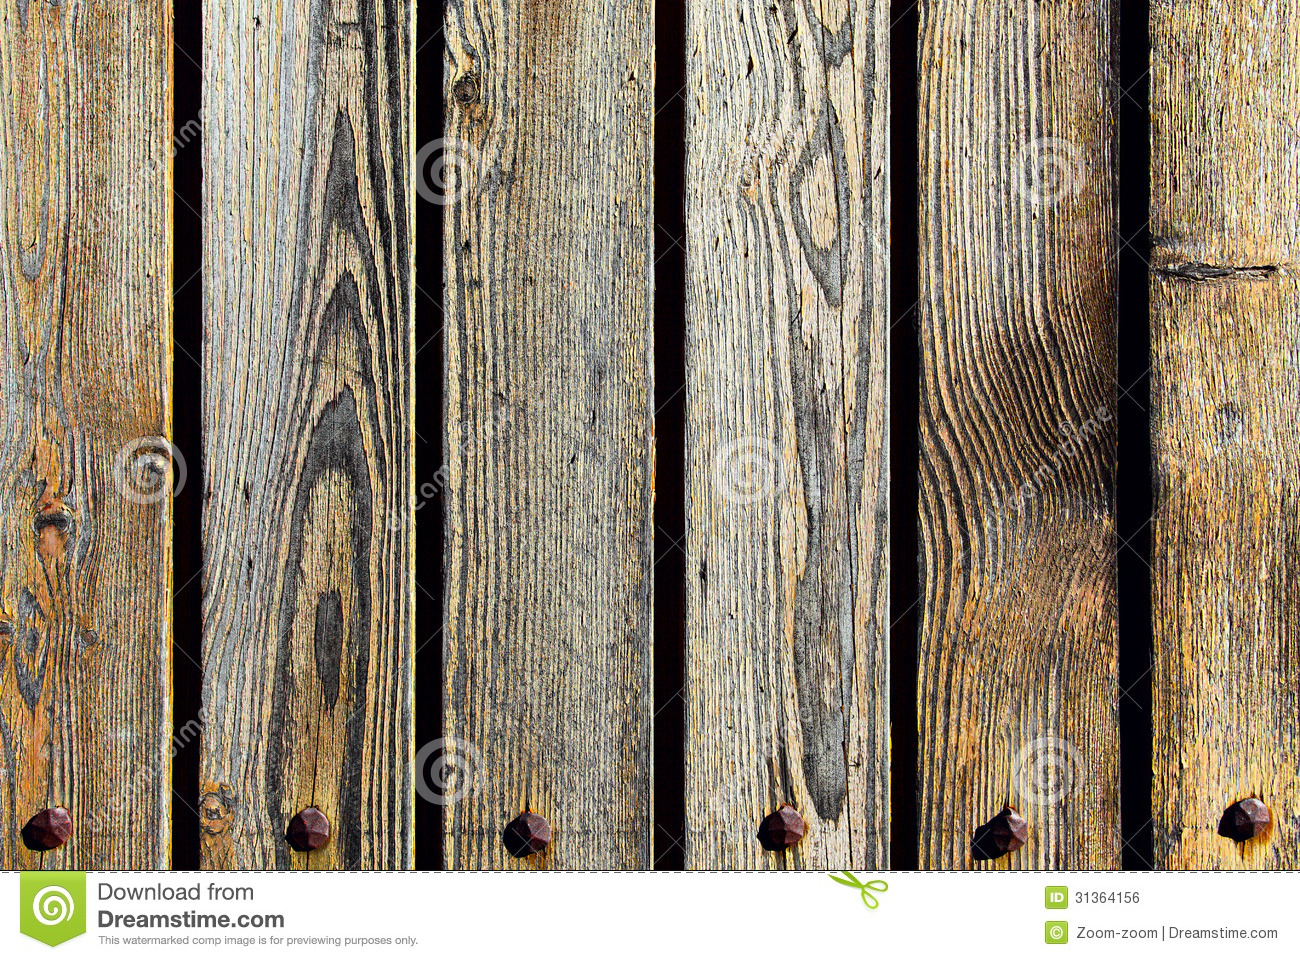 texture des planches en bois image libre de droits image 31364156. Black Bedroom Furniture Sets. Home Design Ideas